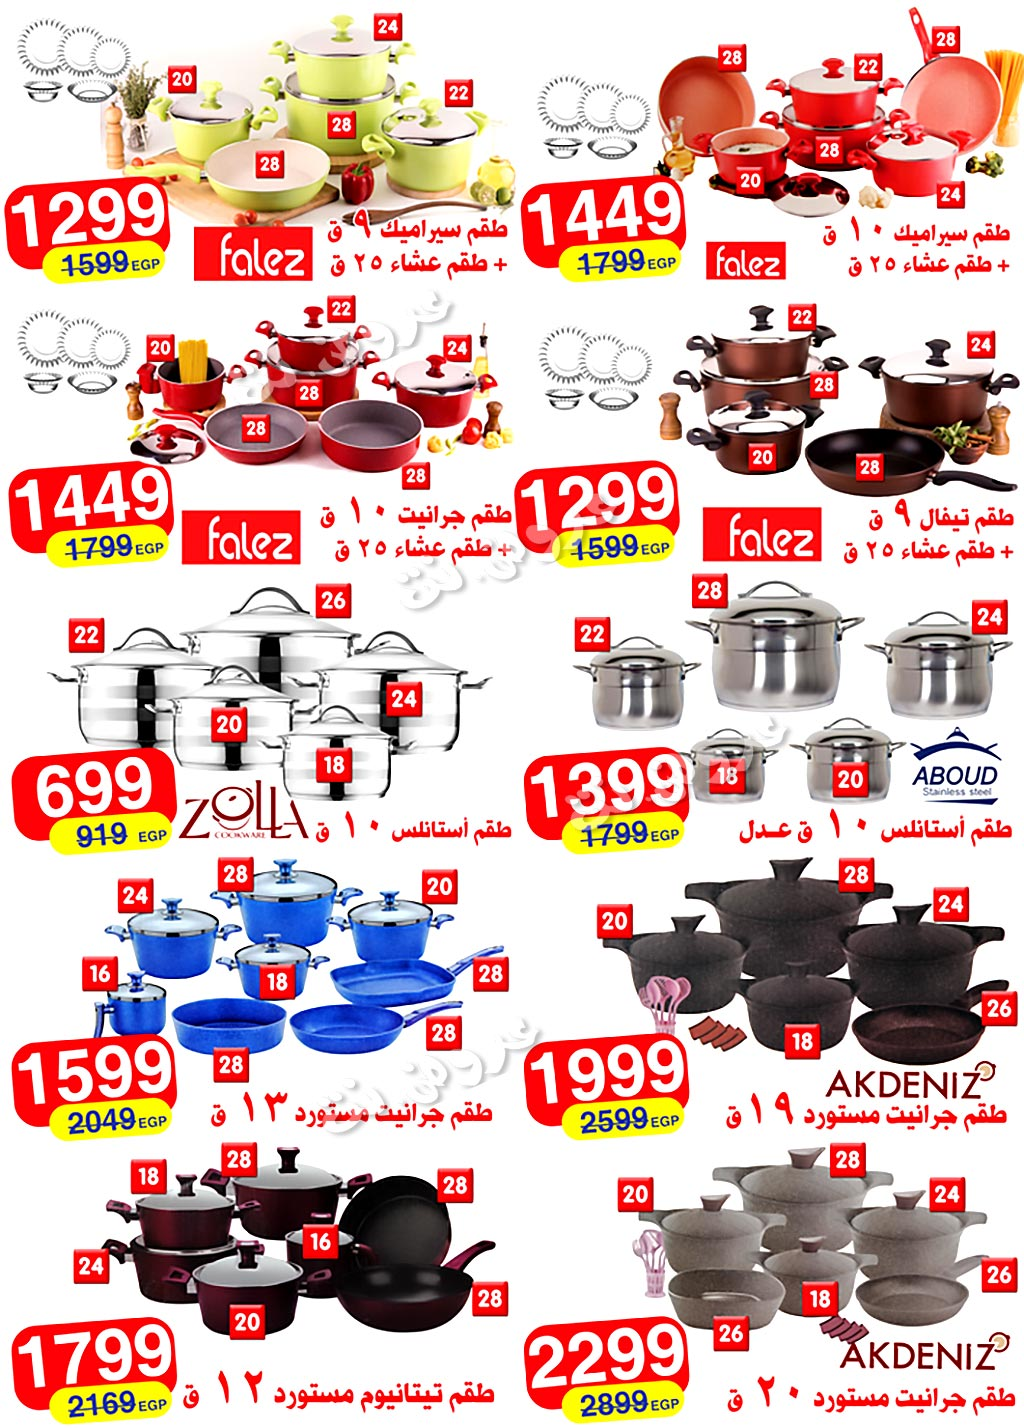 almorshedy offers from 16sep to 30sep 2020 page number 18 عروض أسواق المرشدى من 16 سبتمبر حتى 30 سبتمبر 2020 صفحة رقم 18